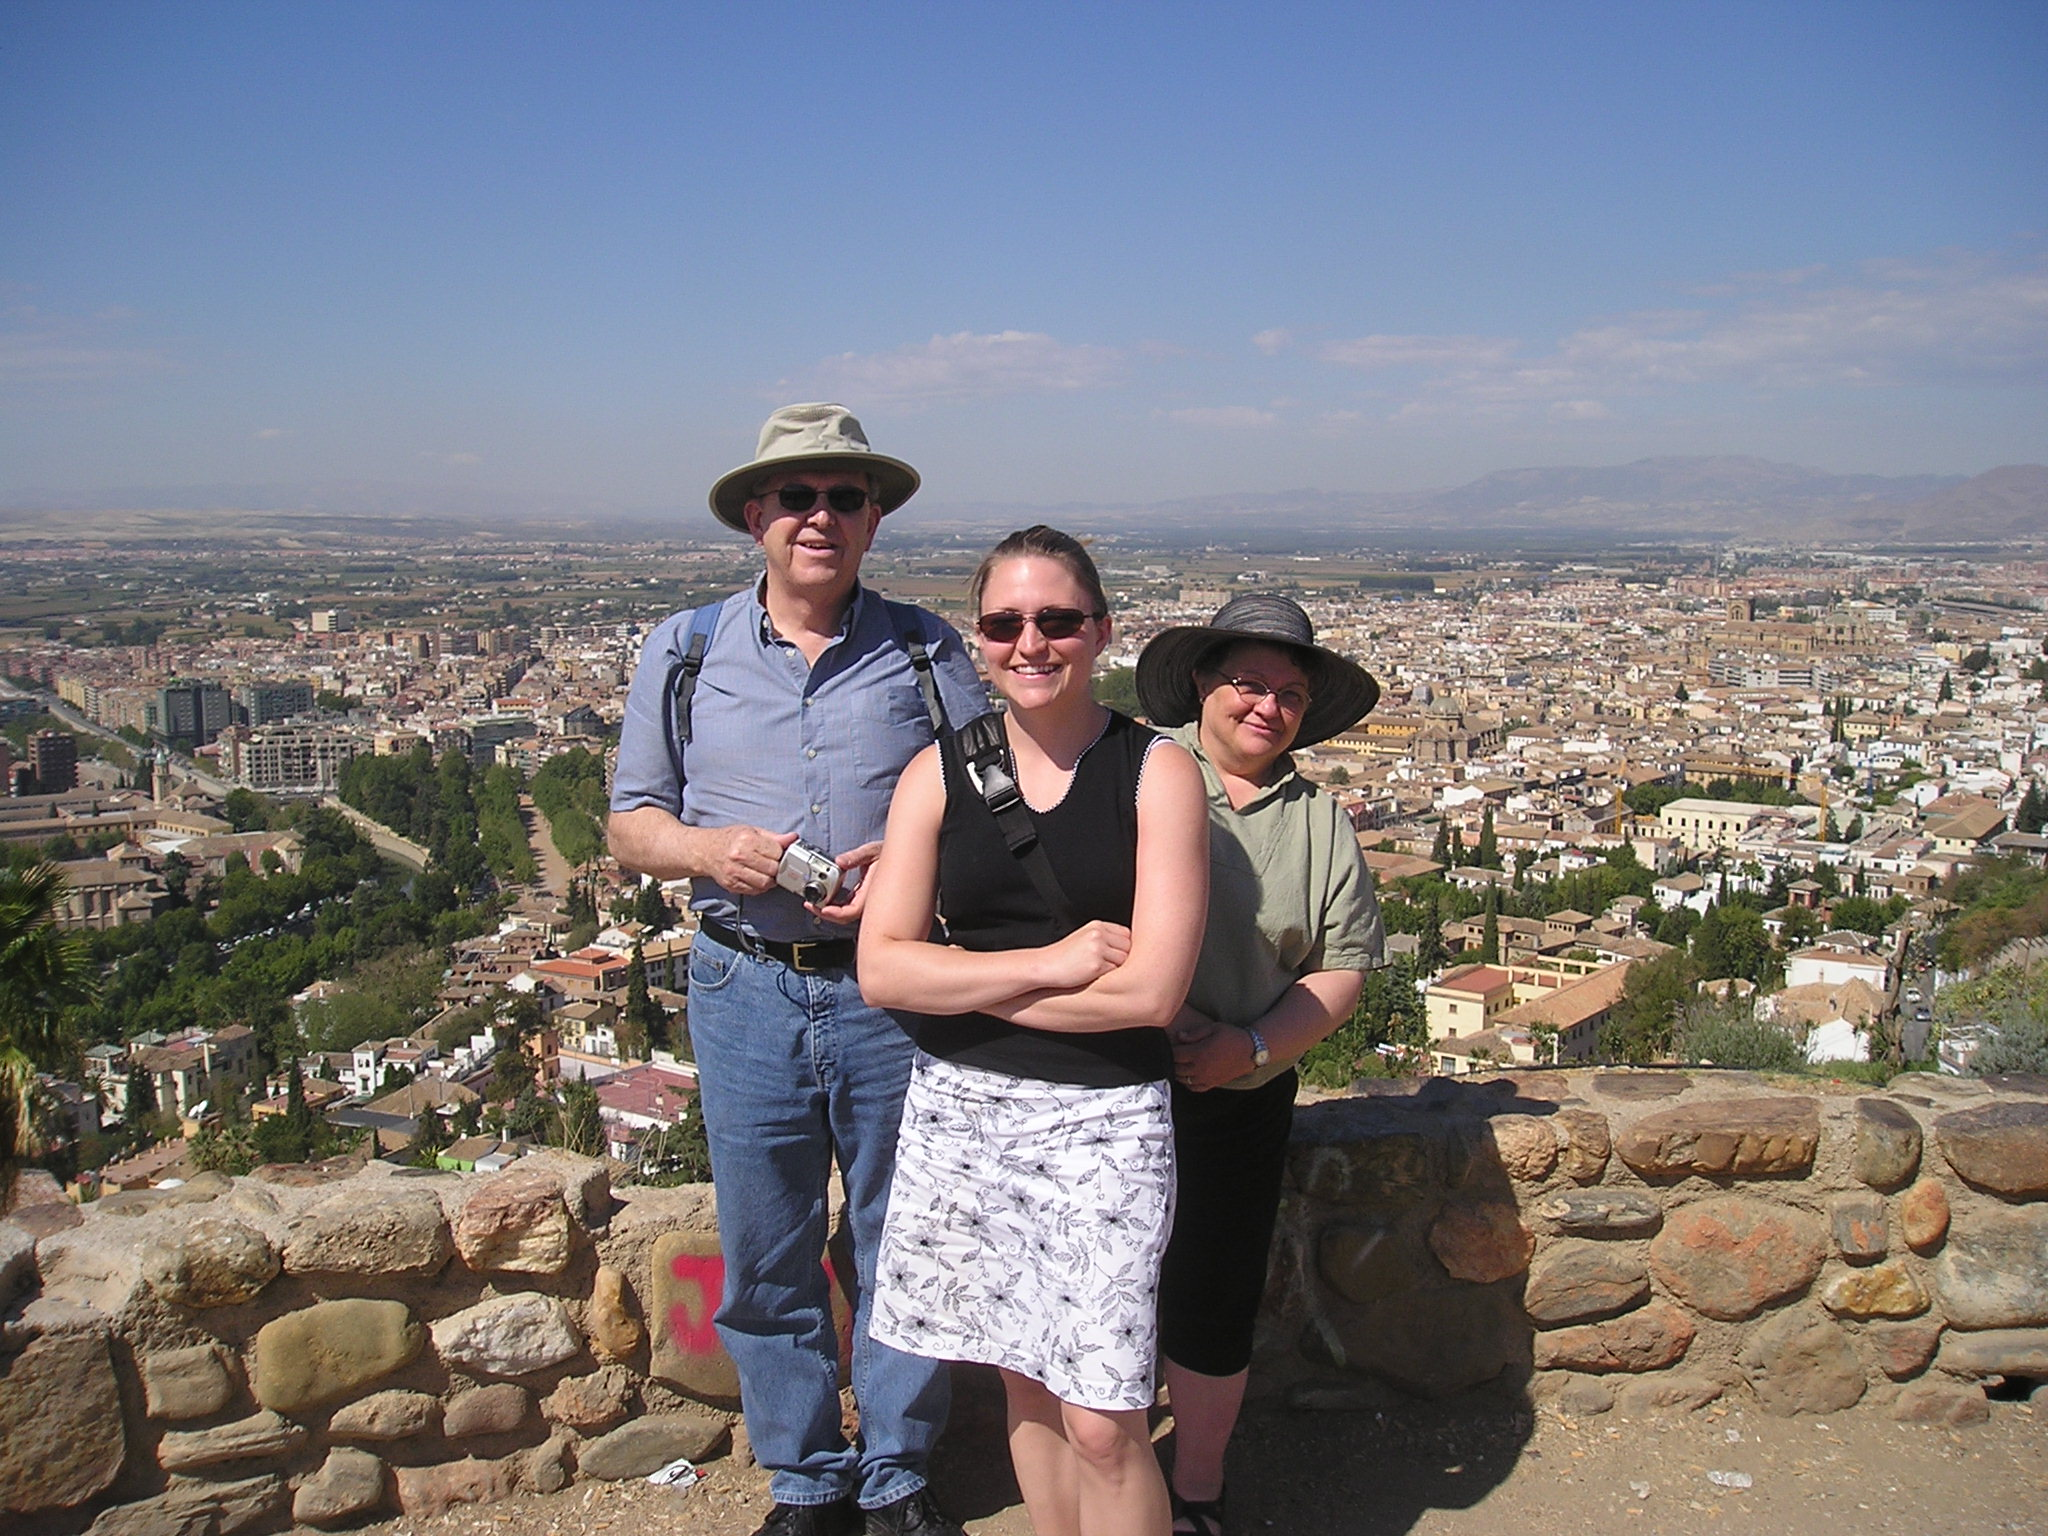 Me, Dad and Mom in Spain